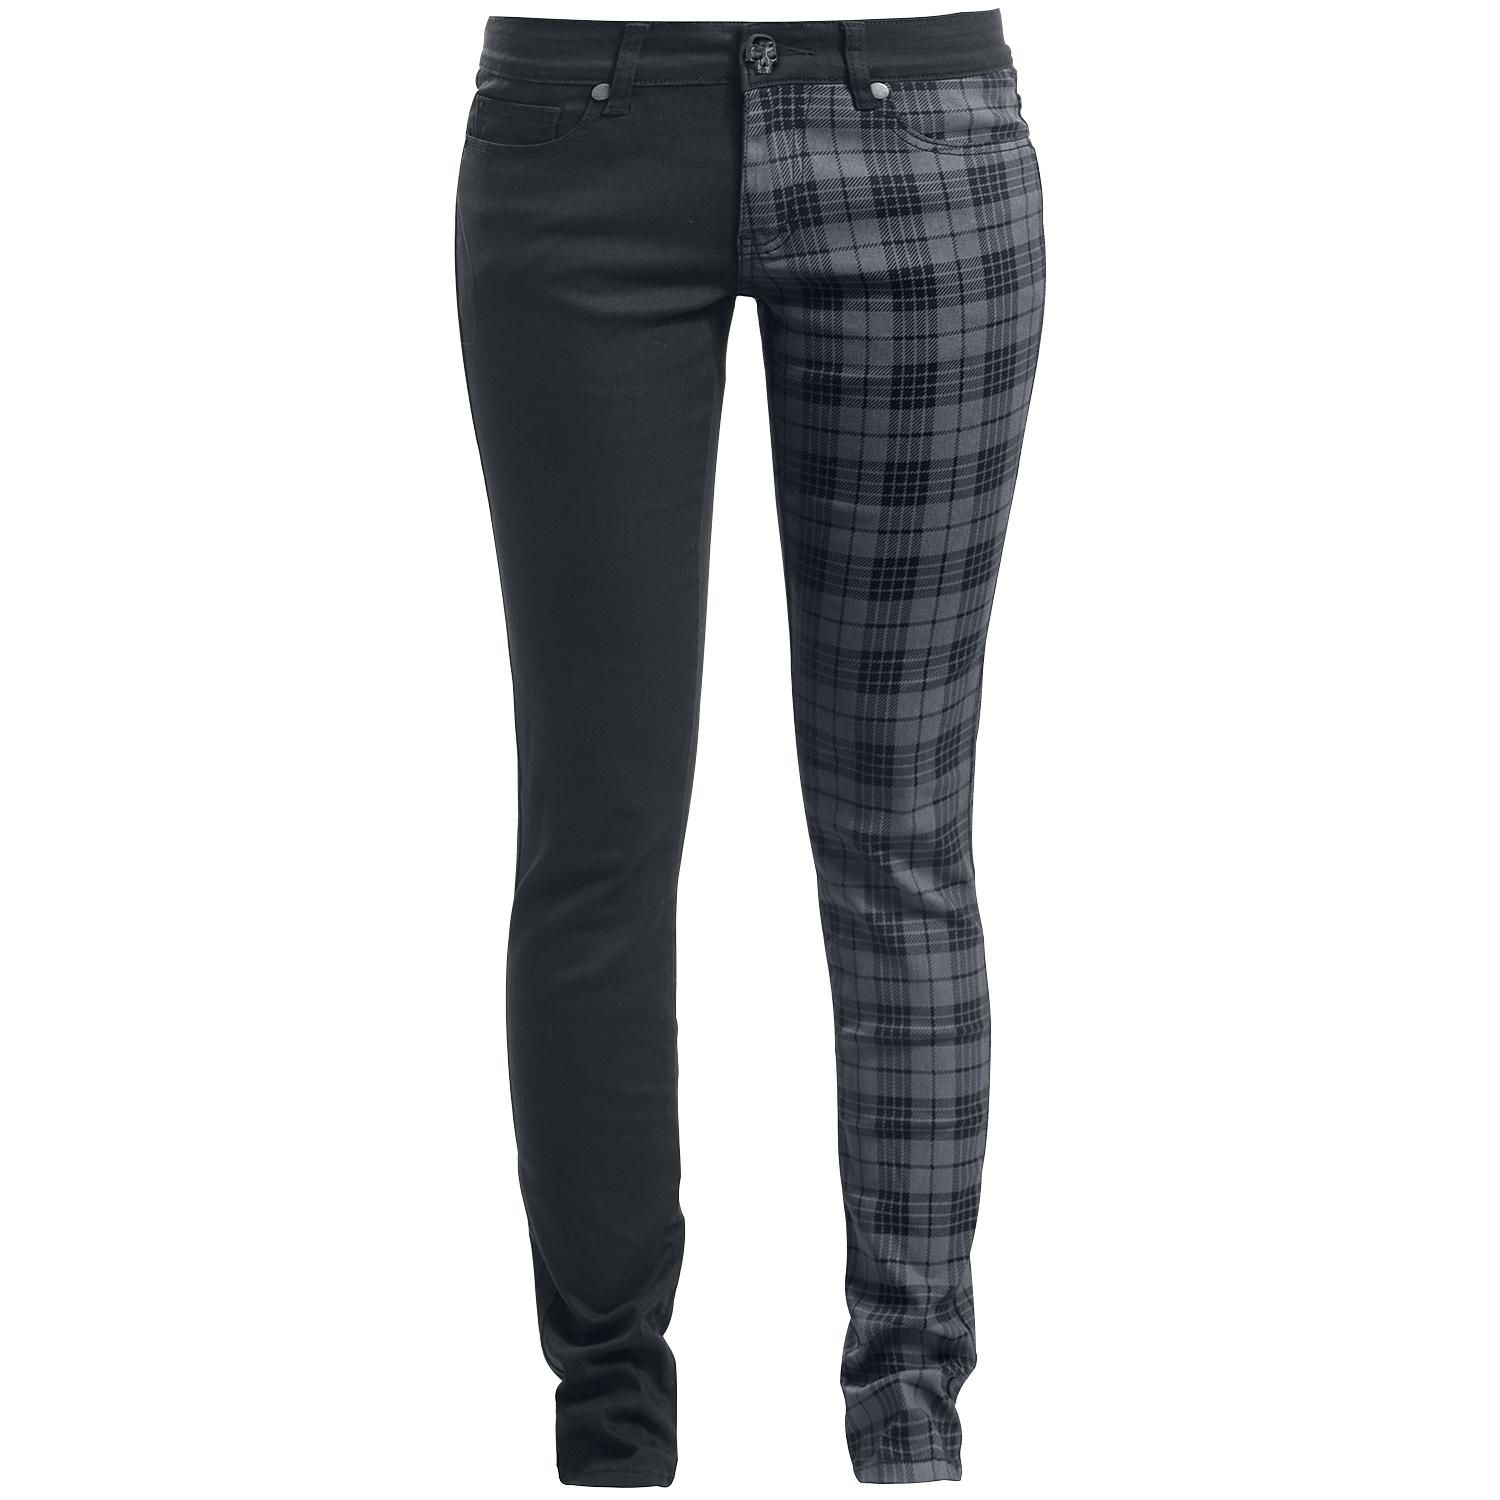 Tartan skarlett slim fit rock rebel by emp tartan clothes and